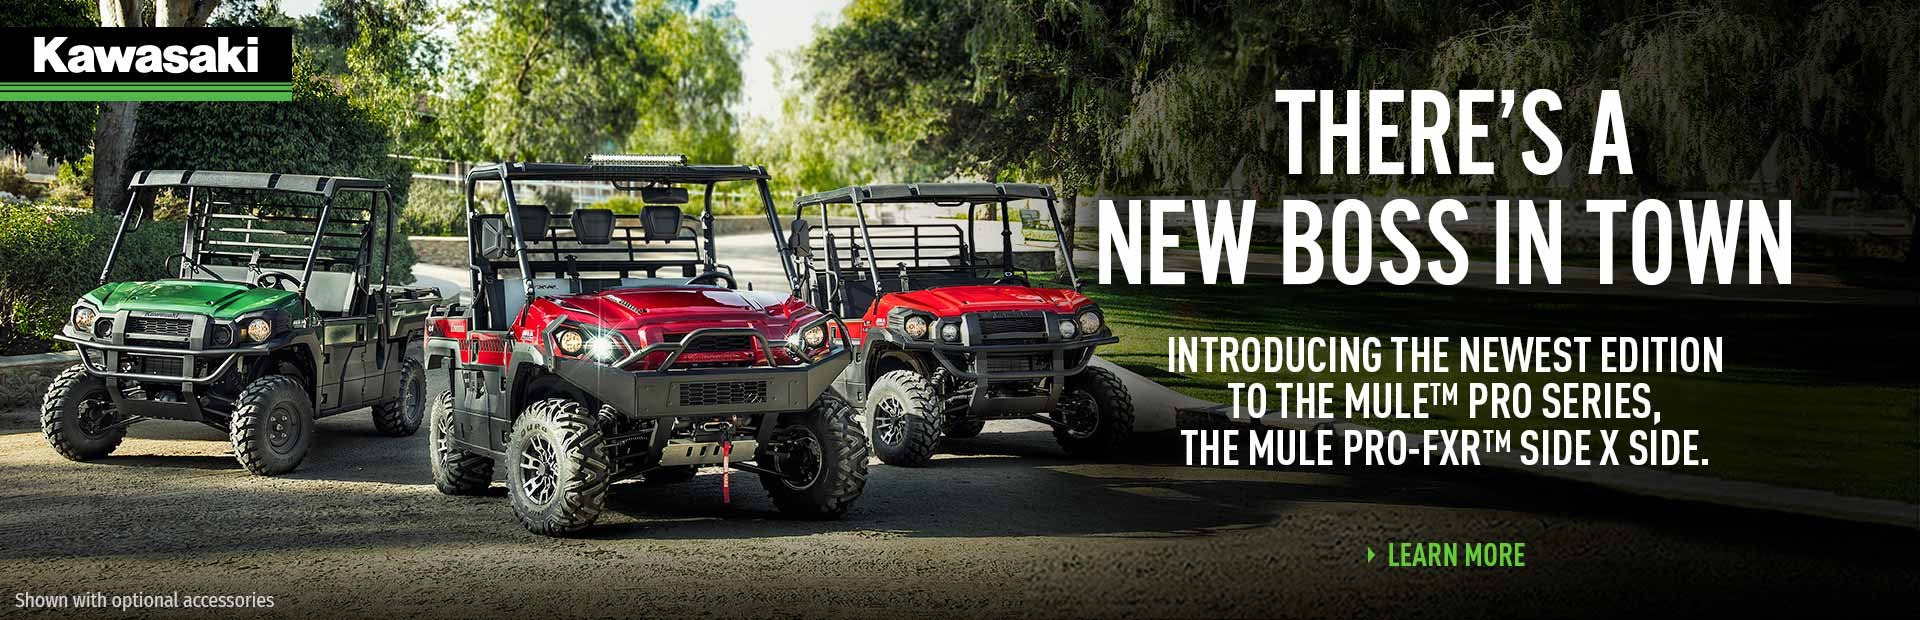 hight resolution of 2018 kawasaki mule family for co op